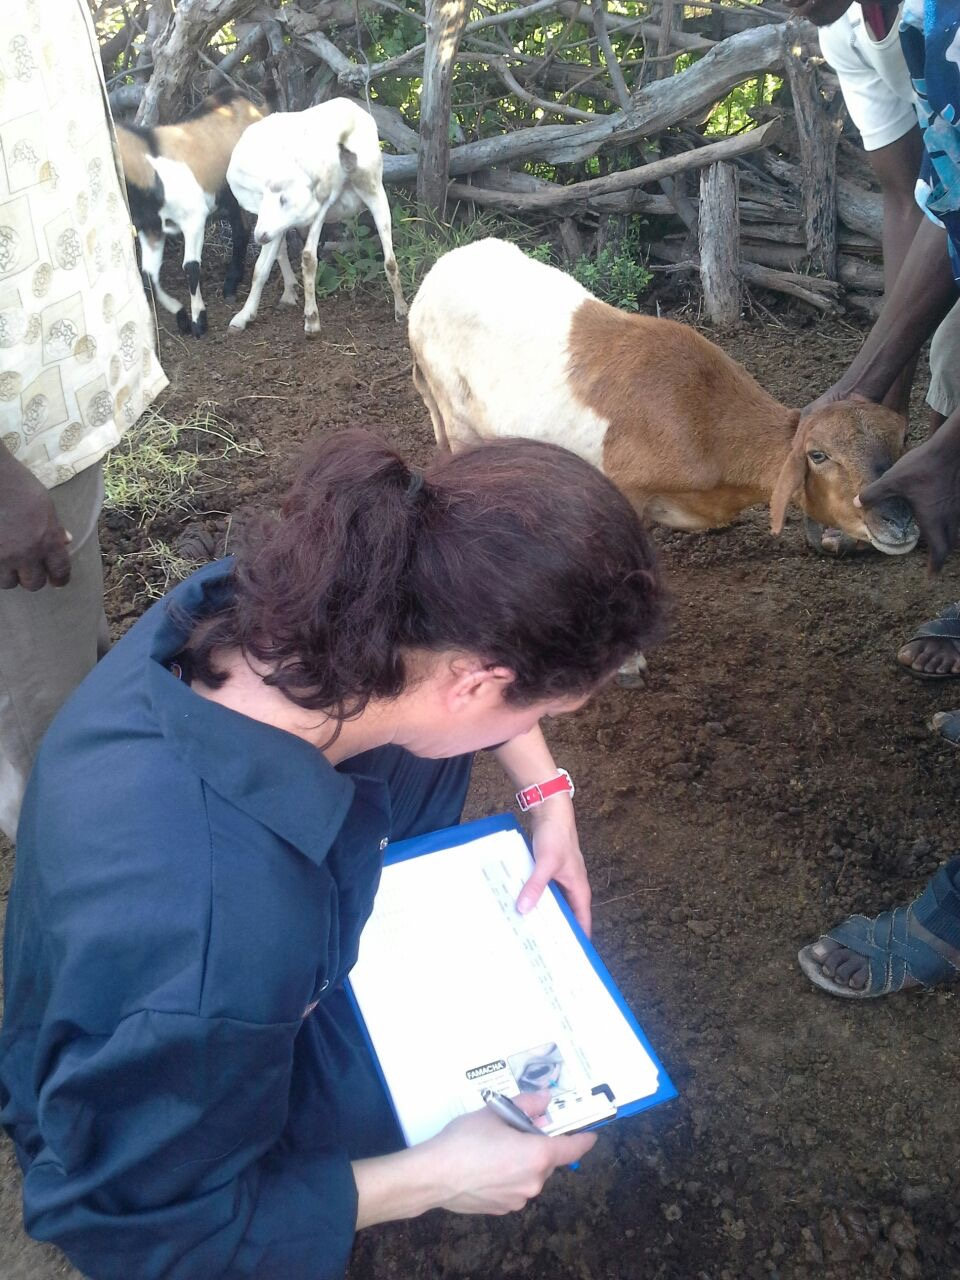 Above: Small ruminant data collection